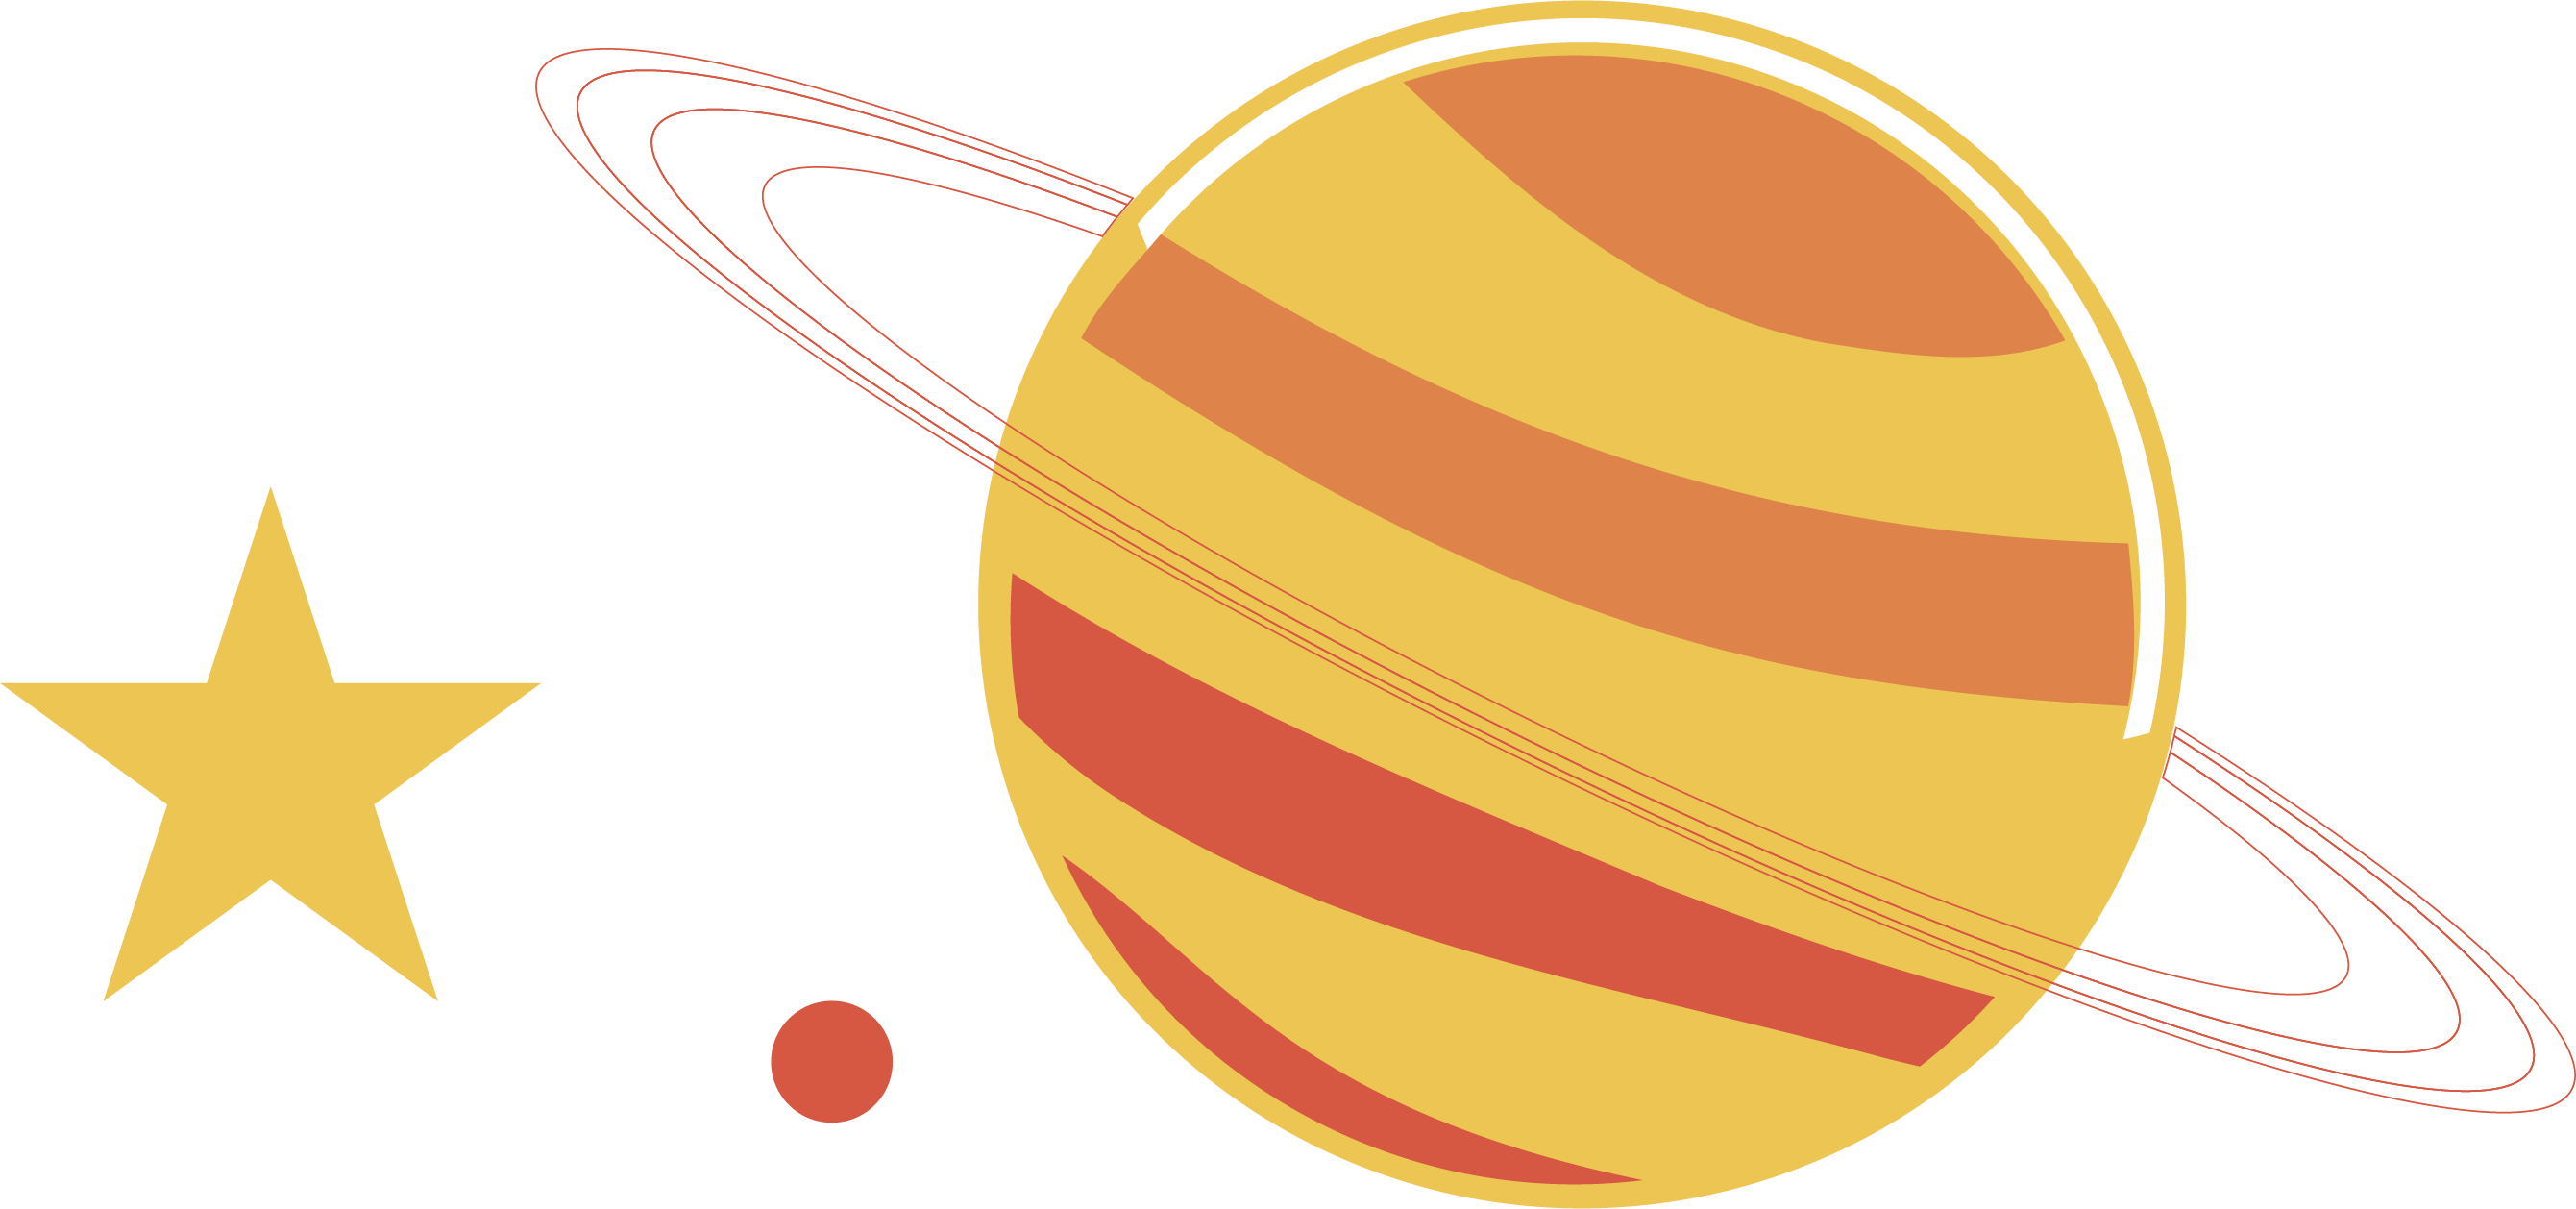 Cartoon transprent png free. Planets clipart star wars planet